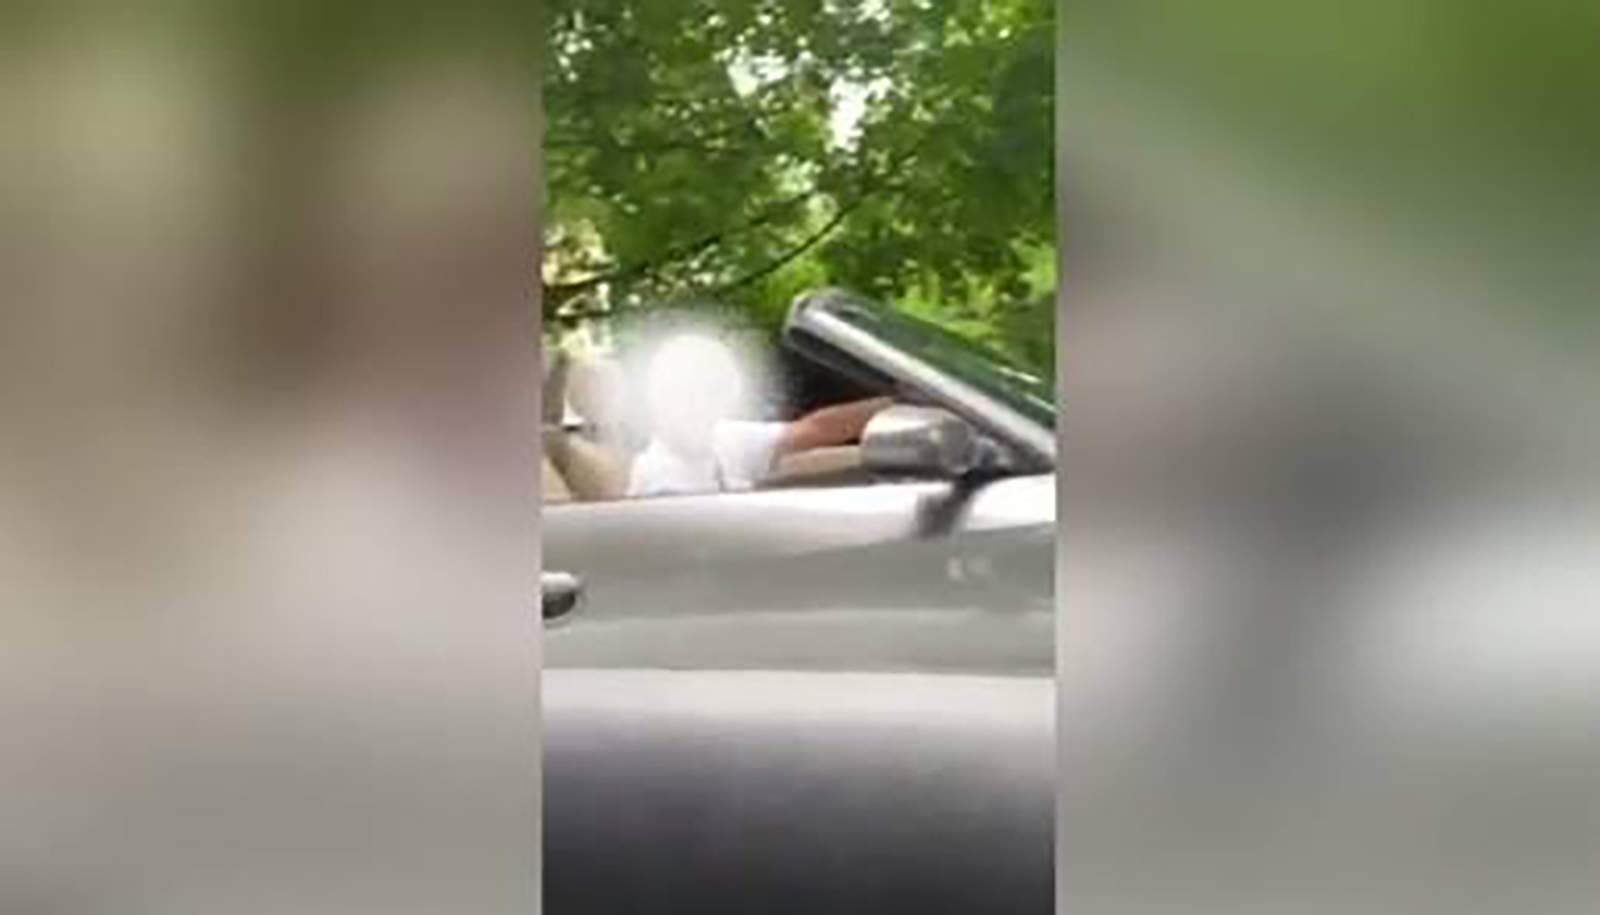 Police are investigating after Black woman says she was followed by a man accusing her of suspicious behavior